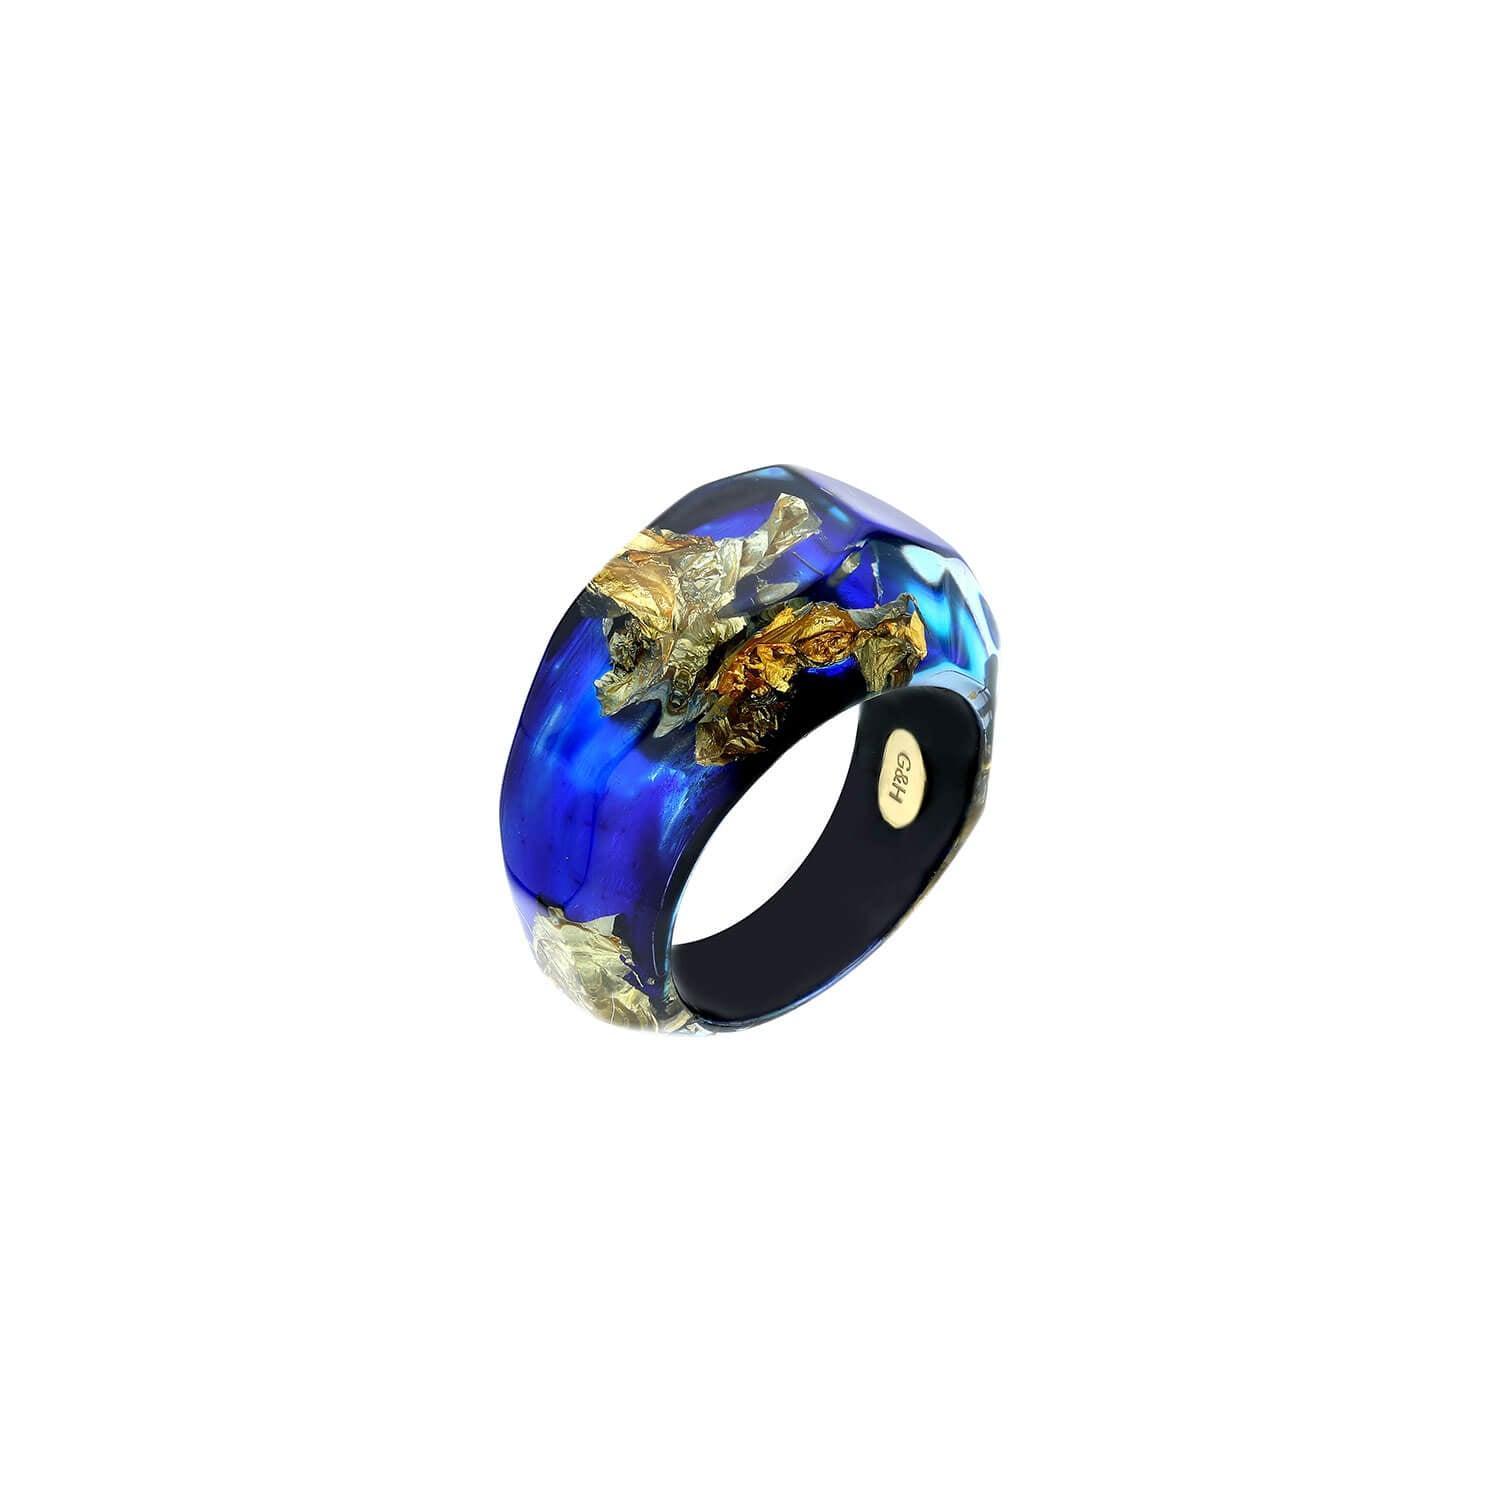 Deep Blue Lucite Ring with Gold Leaf